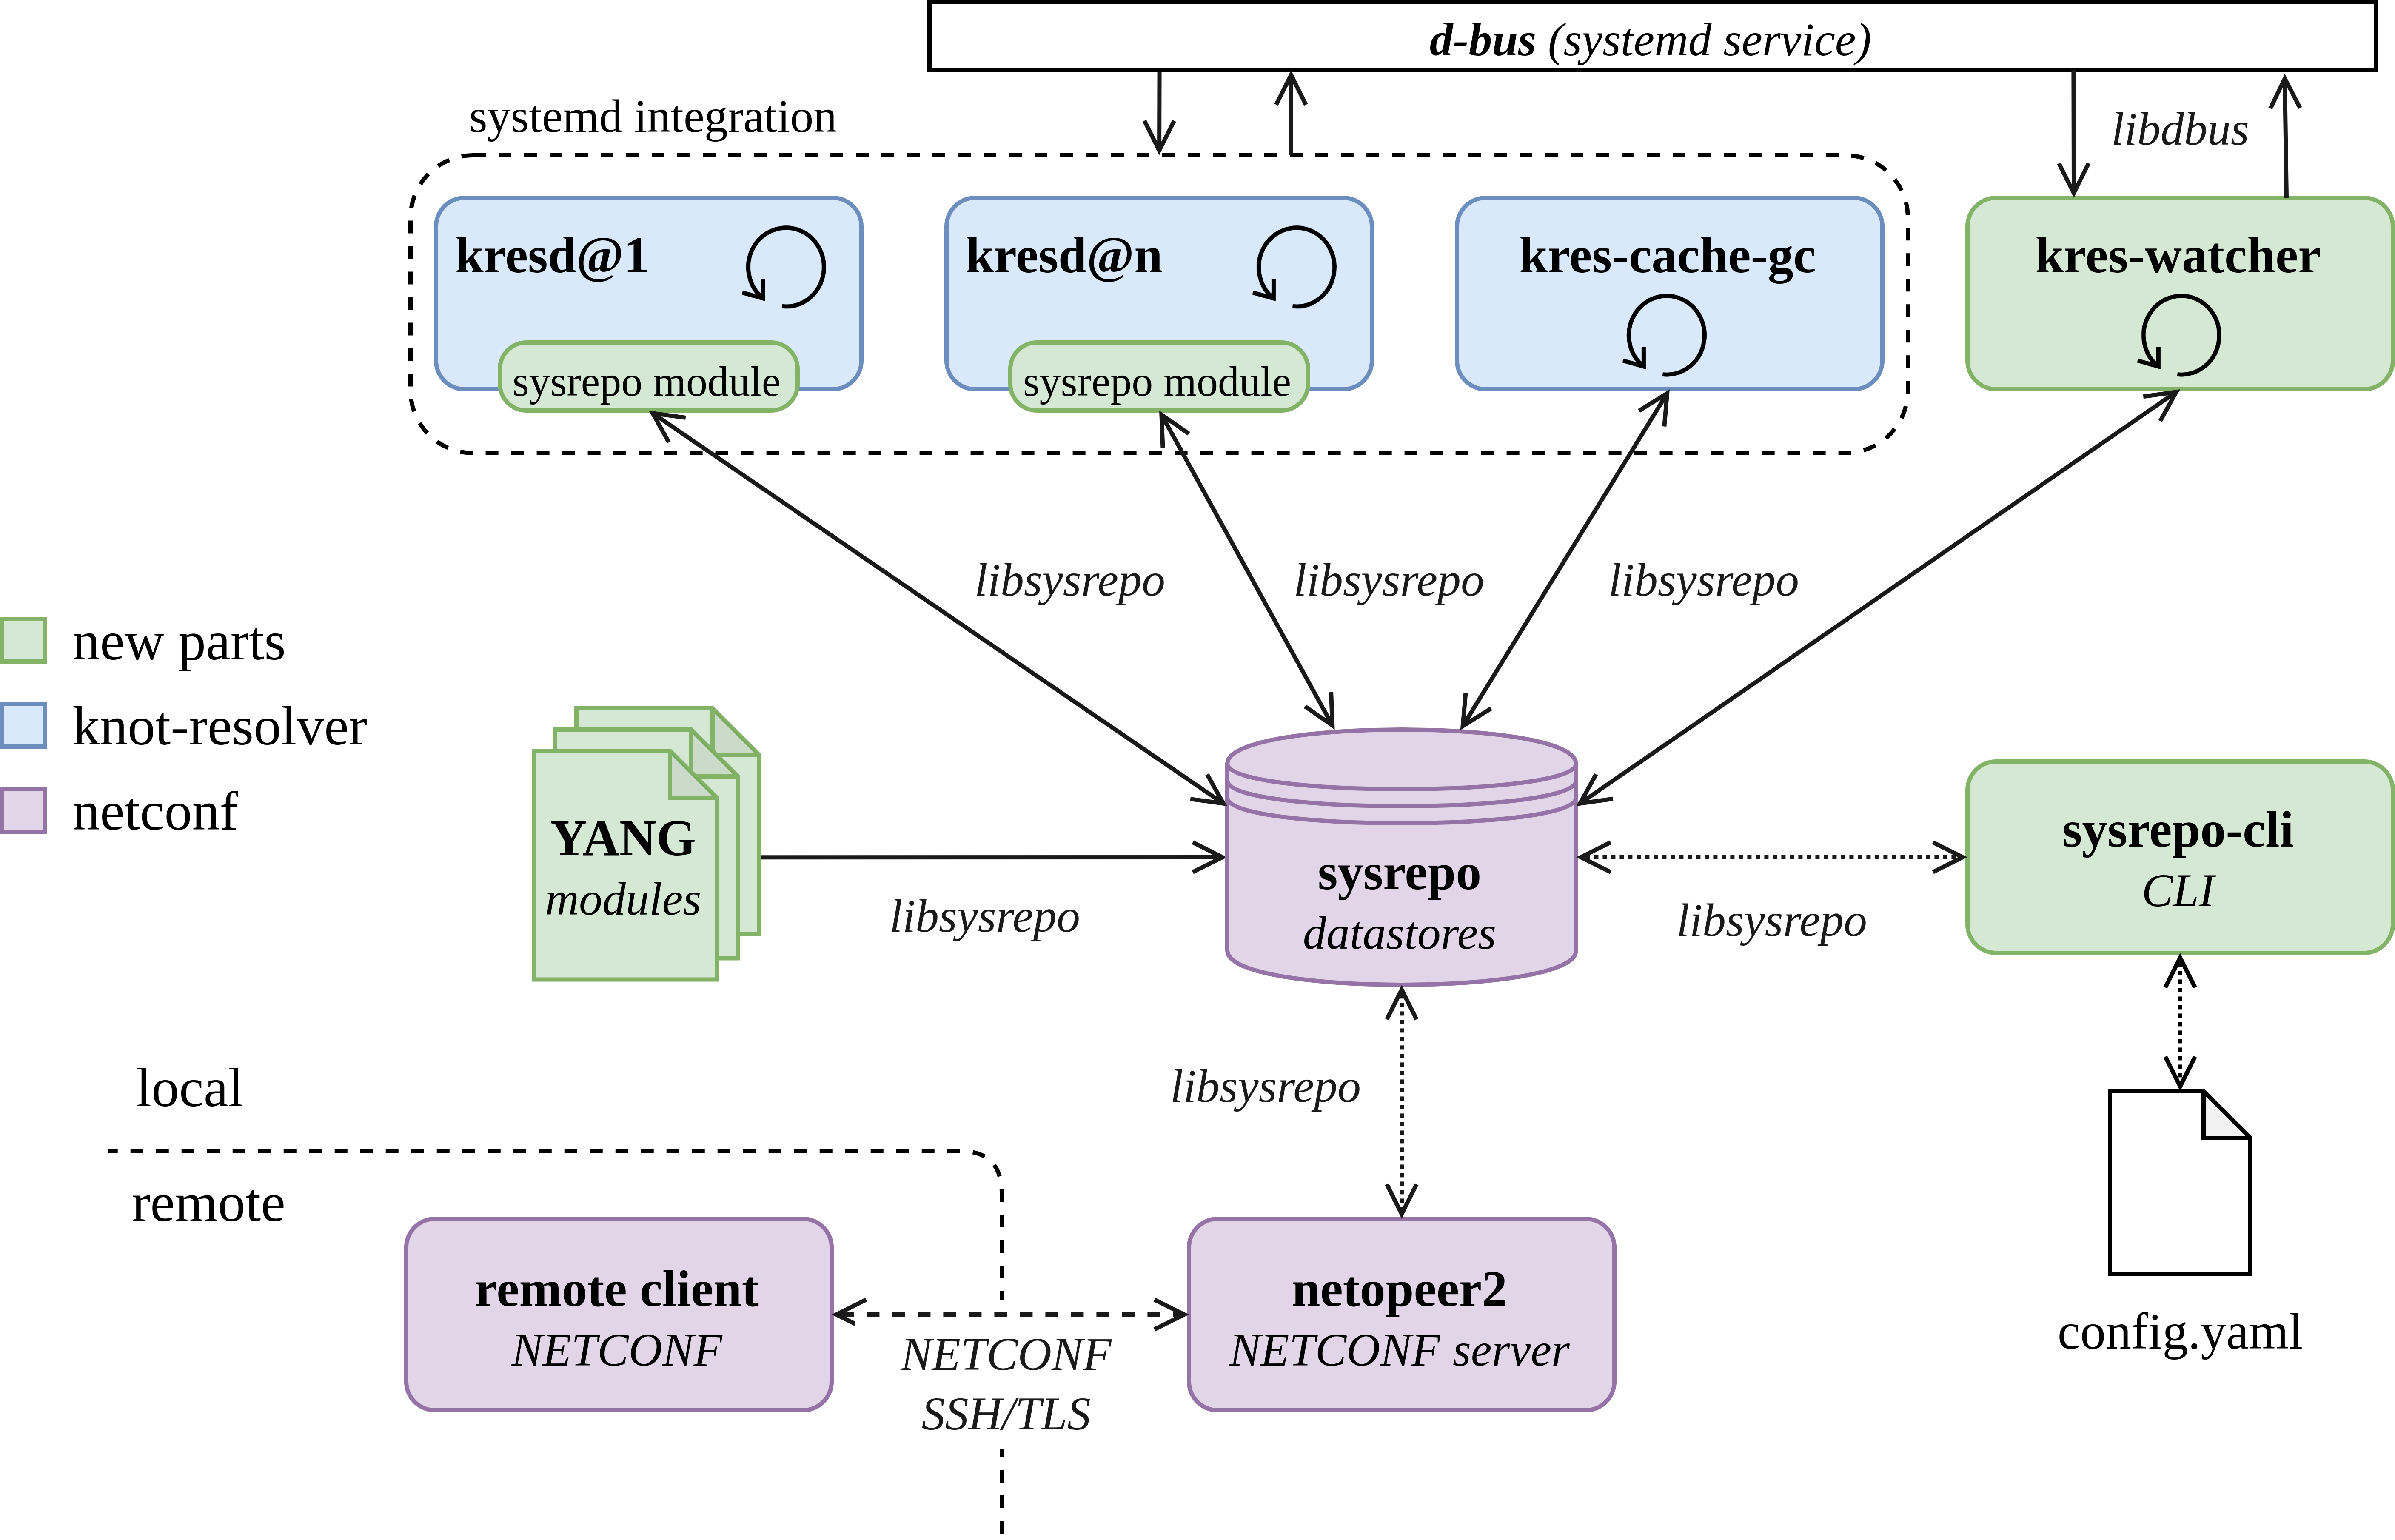 doc/kres-sysrepo-architecture.png